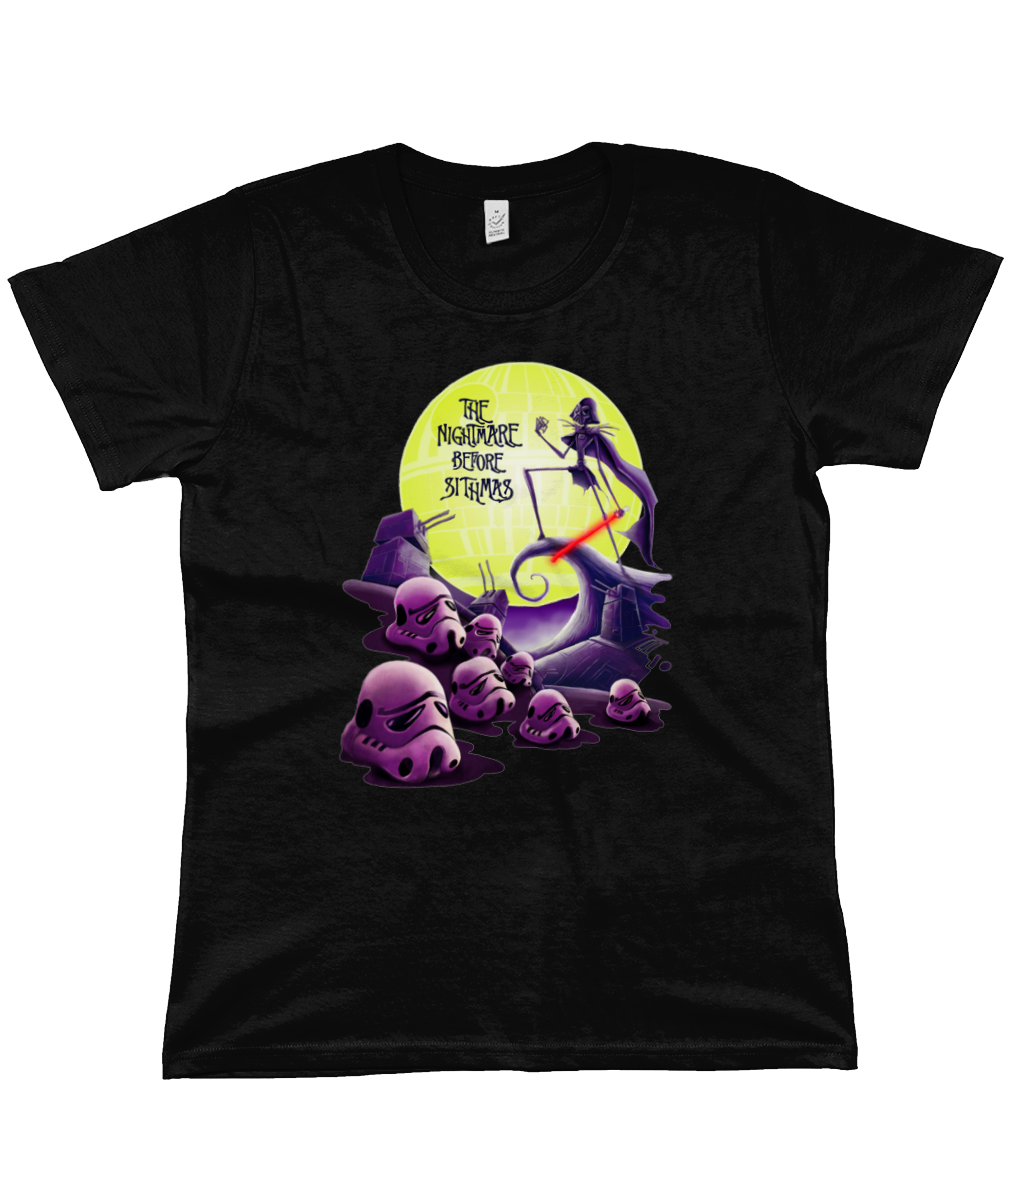 star wars nightmare before sithmas t-shirt